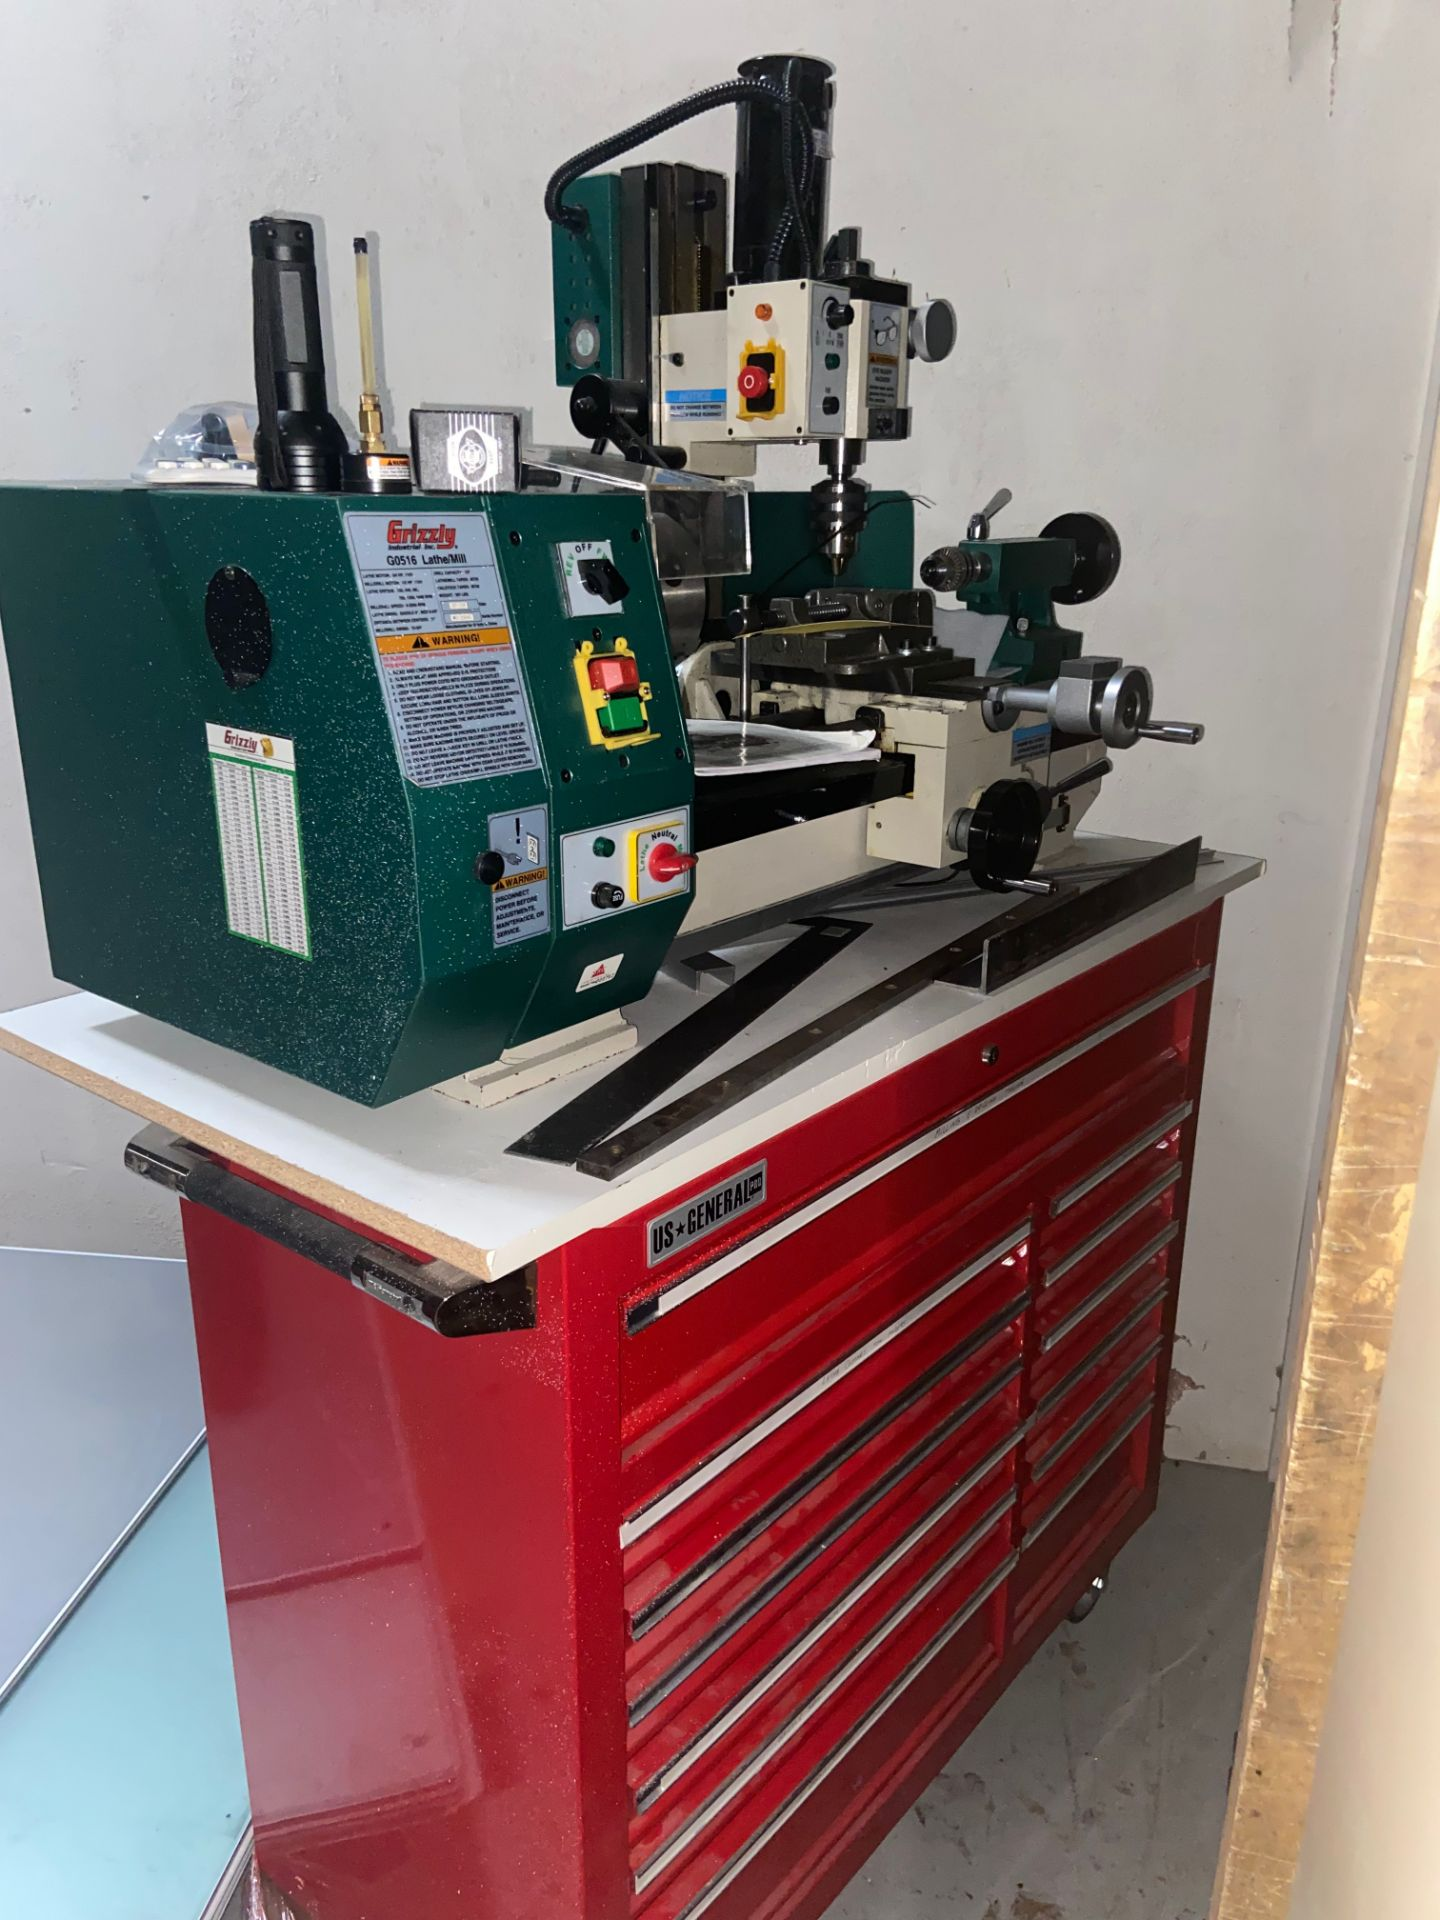 Grizzly Industrial Lathe/Mill, Model# G0516, Serial# MO120045, Lathe Motor 3/4 hp, 110V, 150-2400 - Image 3 of 12